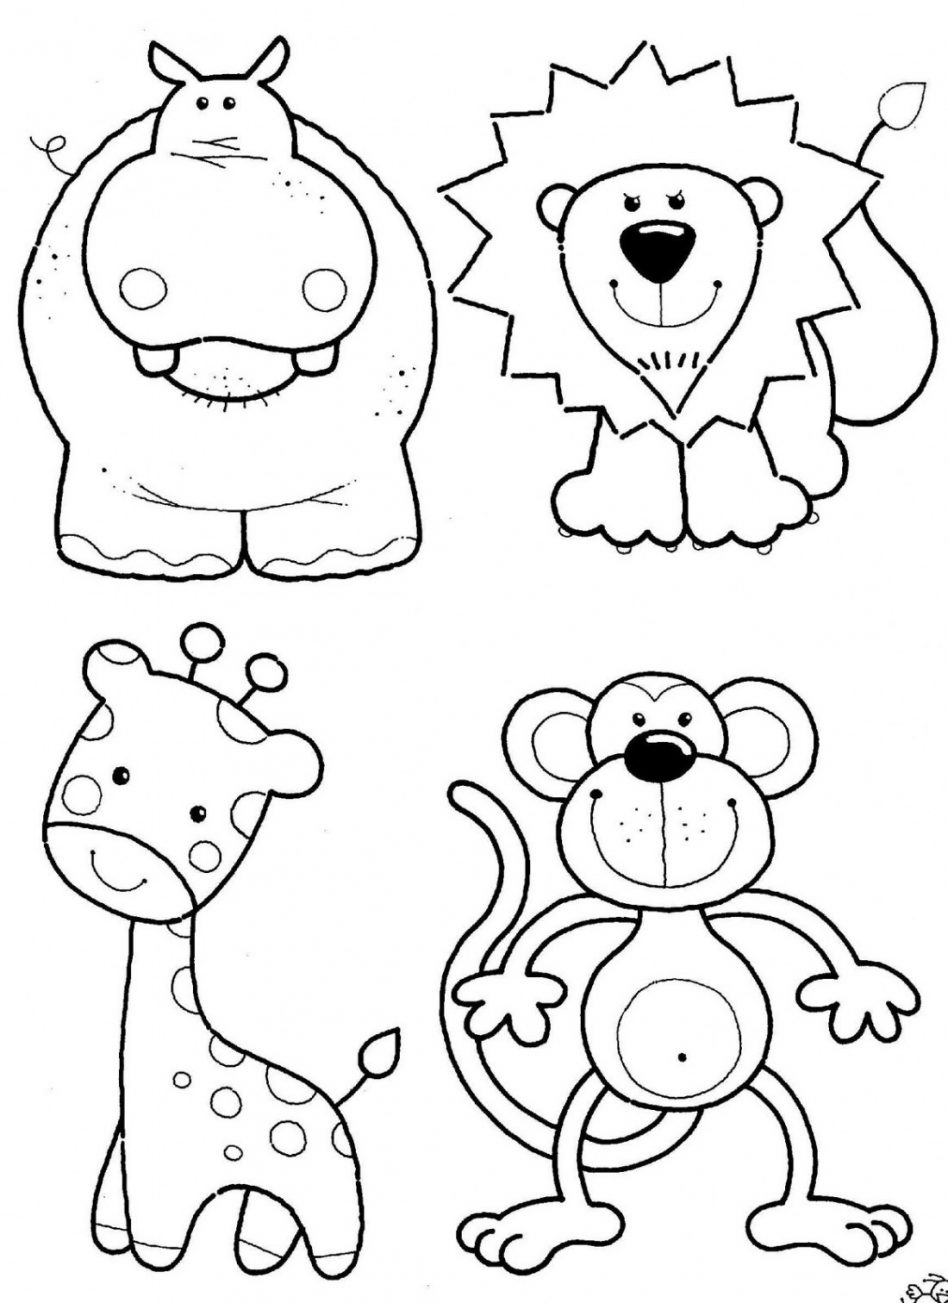 948x1303 Liger Animal Coloring Image Gallery Website Animal Coloring Pages